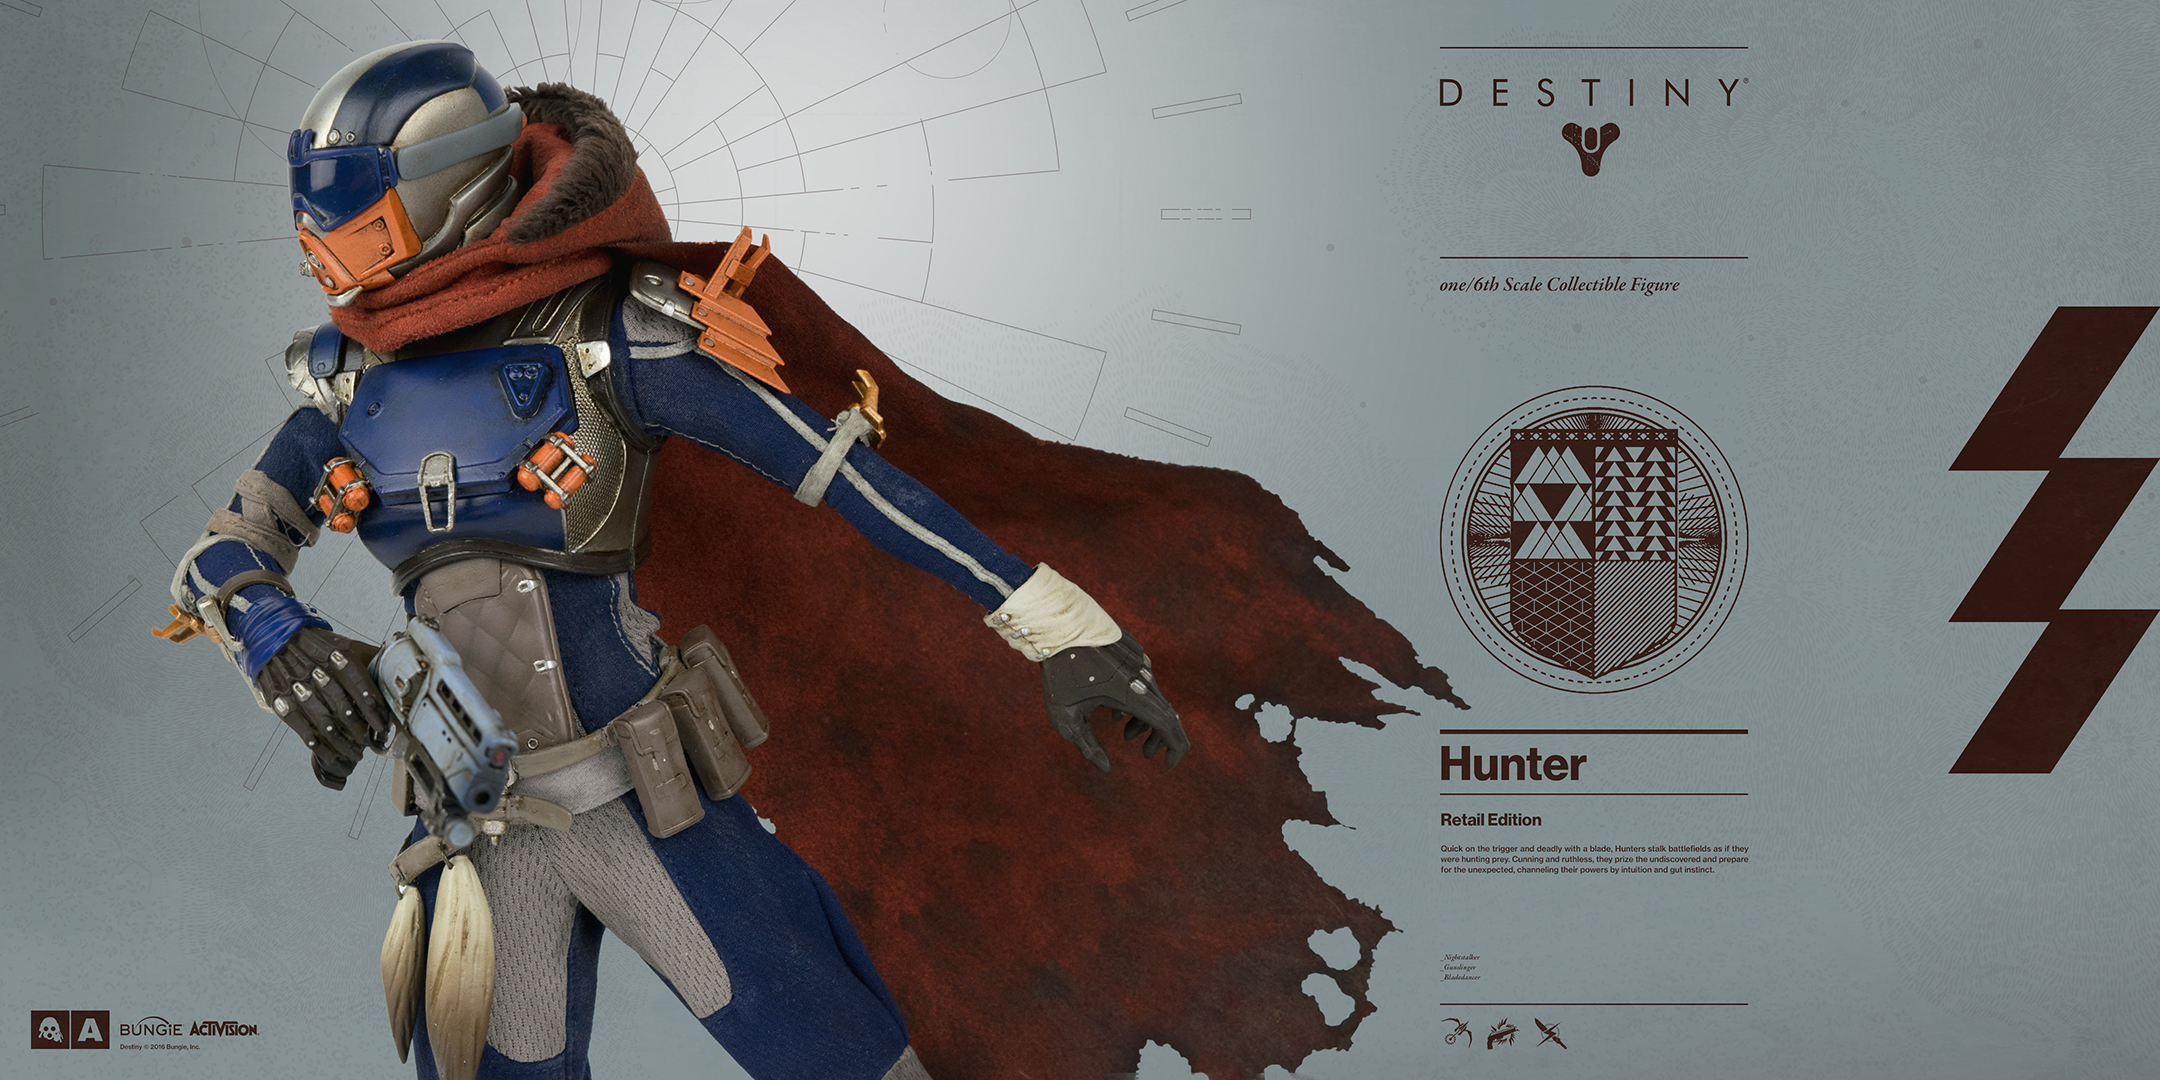 3A_Destiny_Hunter_RetailEdition_Landscape_Left_v001.png